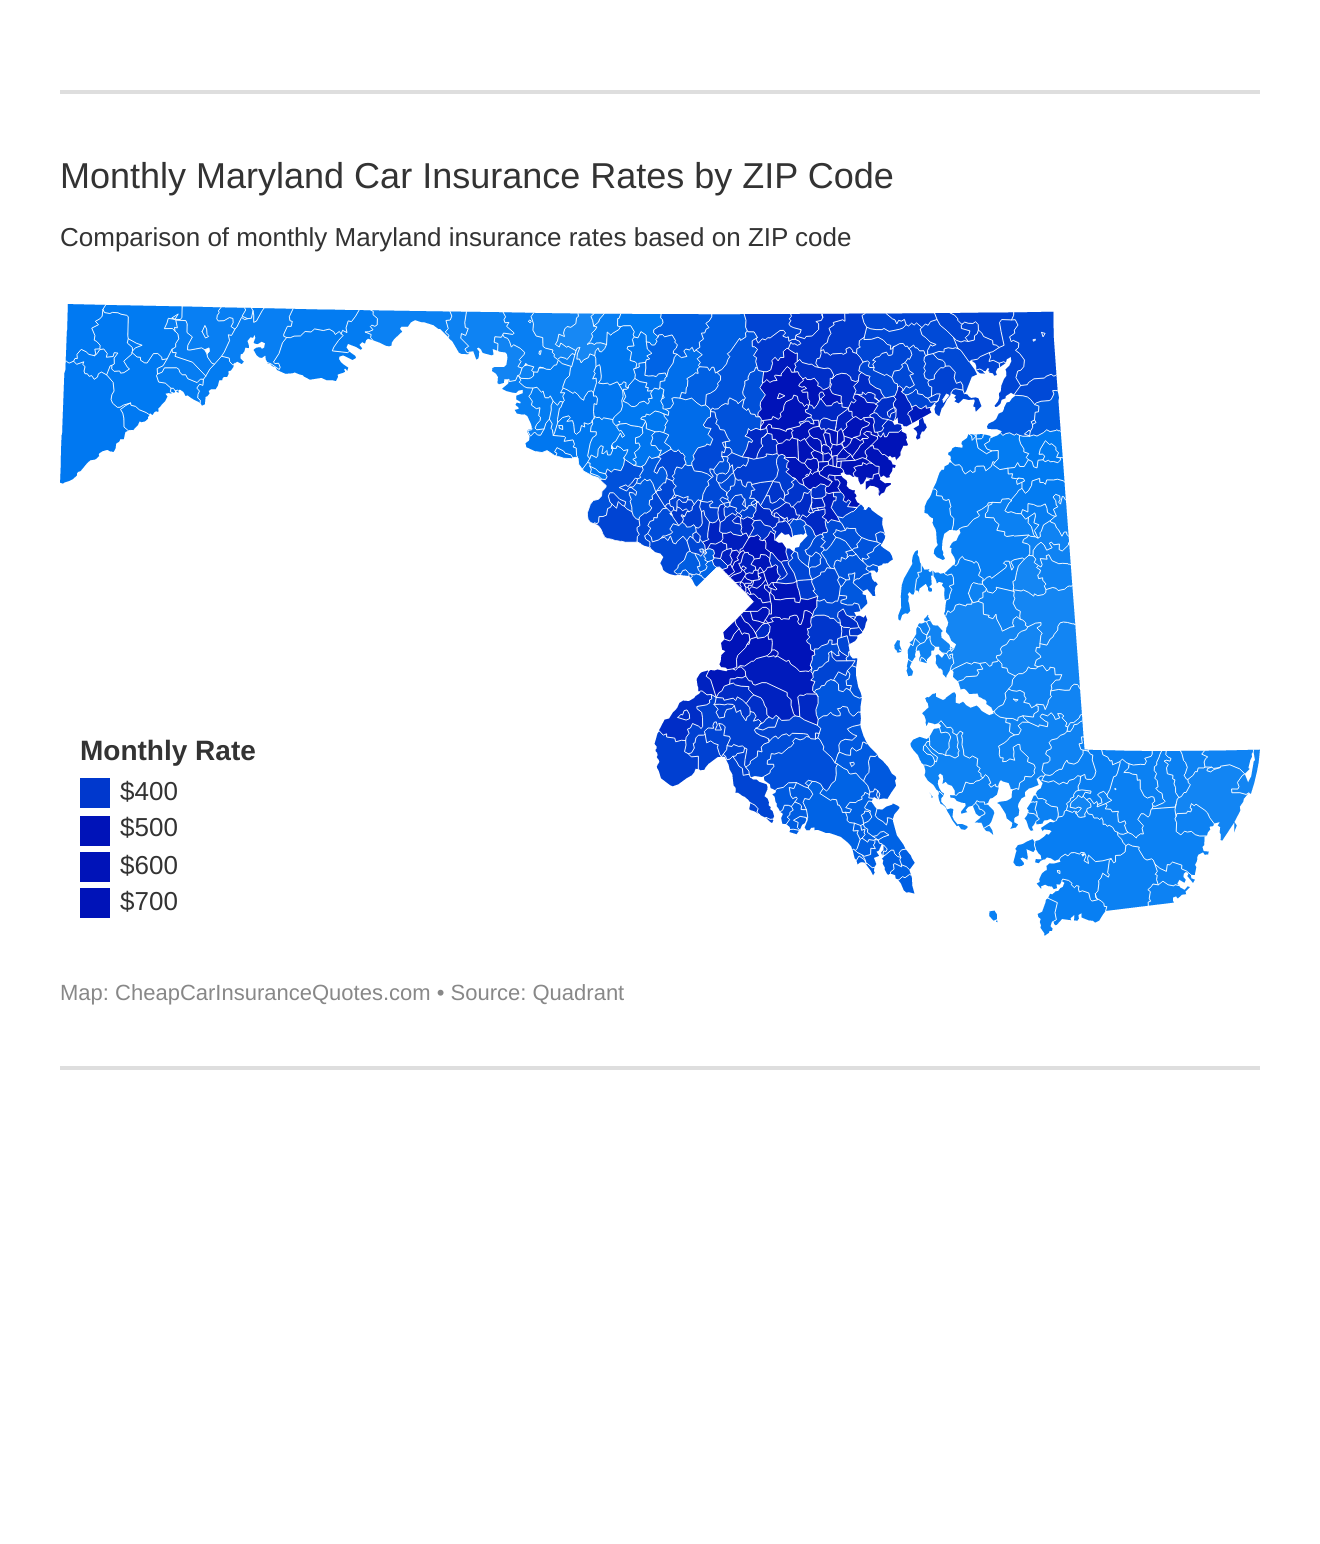 Monthly Maryland Car Insurance Rates by ZIP Code